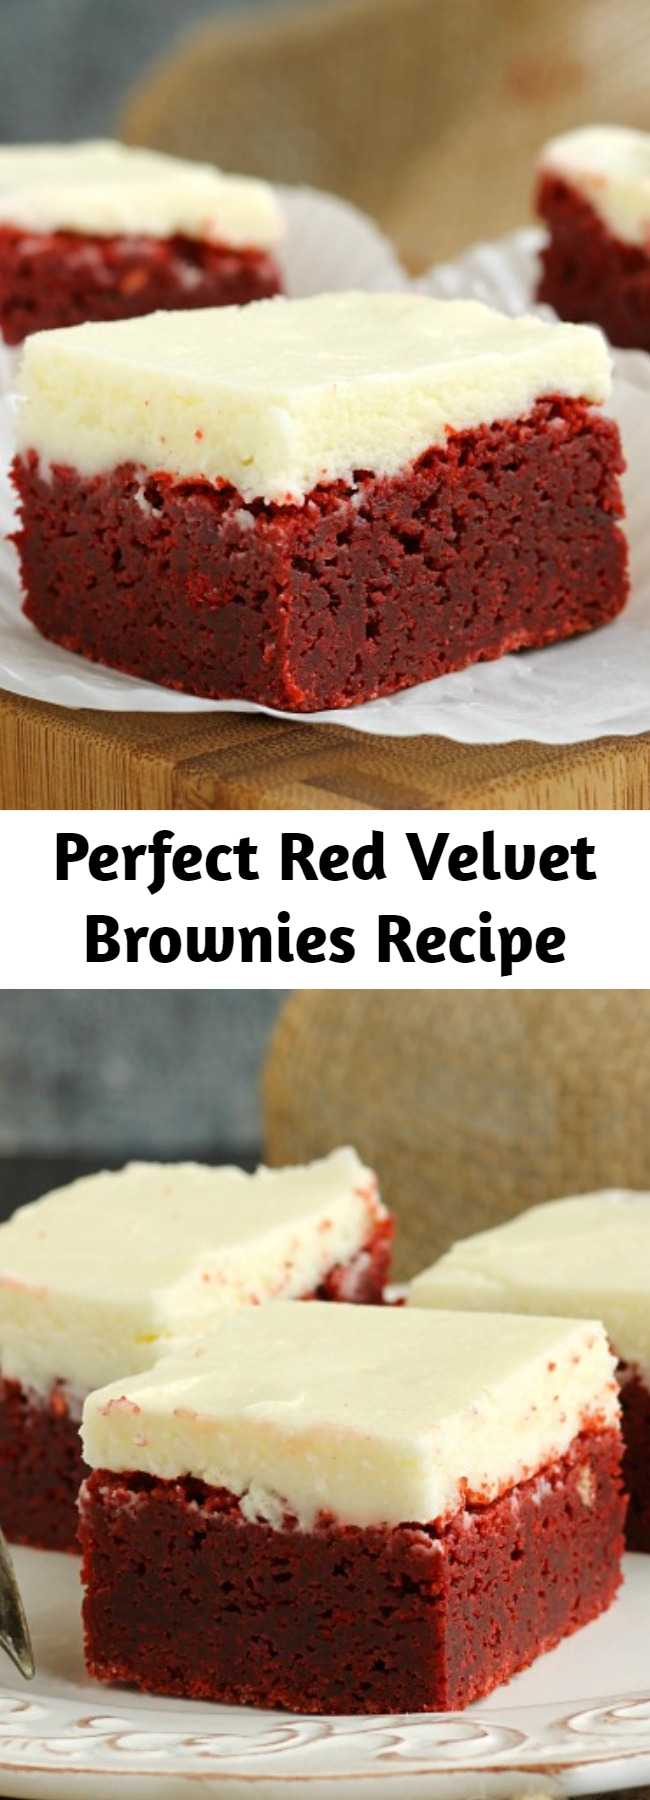 Perfect Red Velvet Brownies Recipe - A classic cake is made into rich, dense and delicious brownies. Smother them in cream cheese frosting and they're dessert perfection.